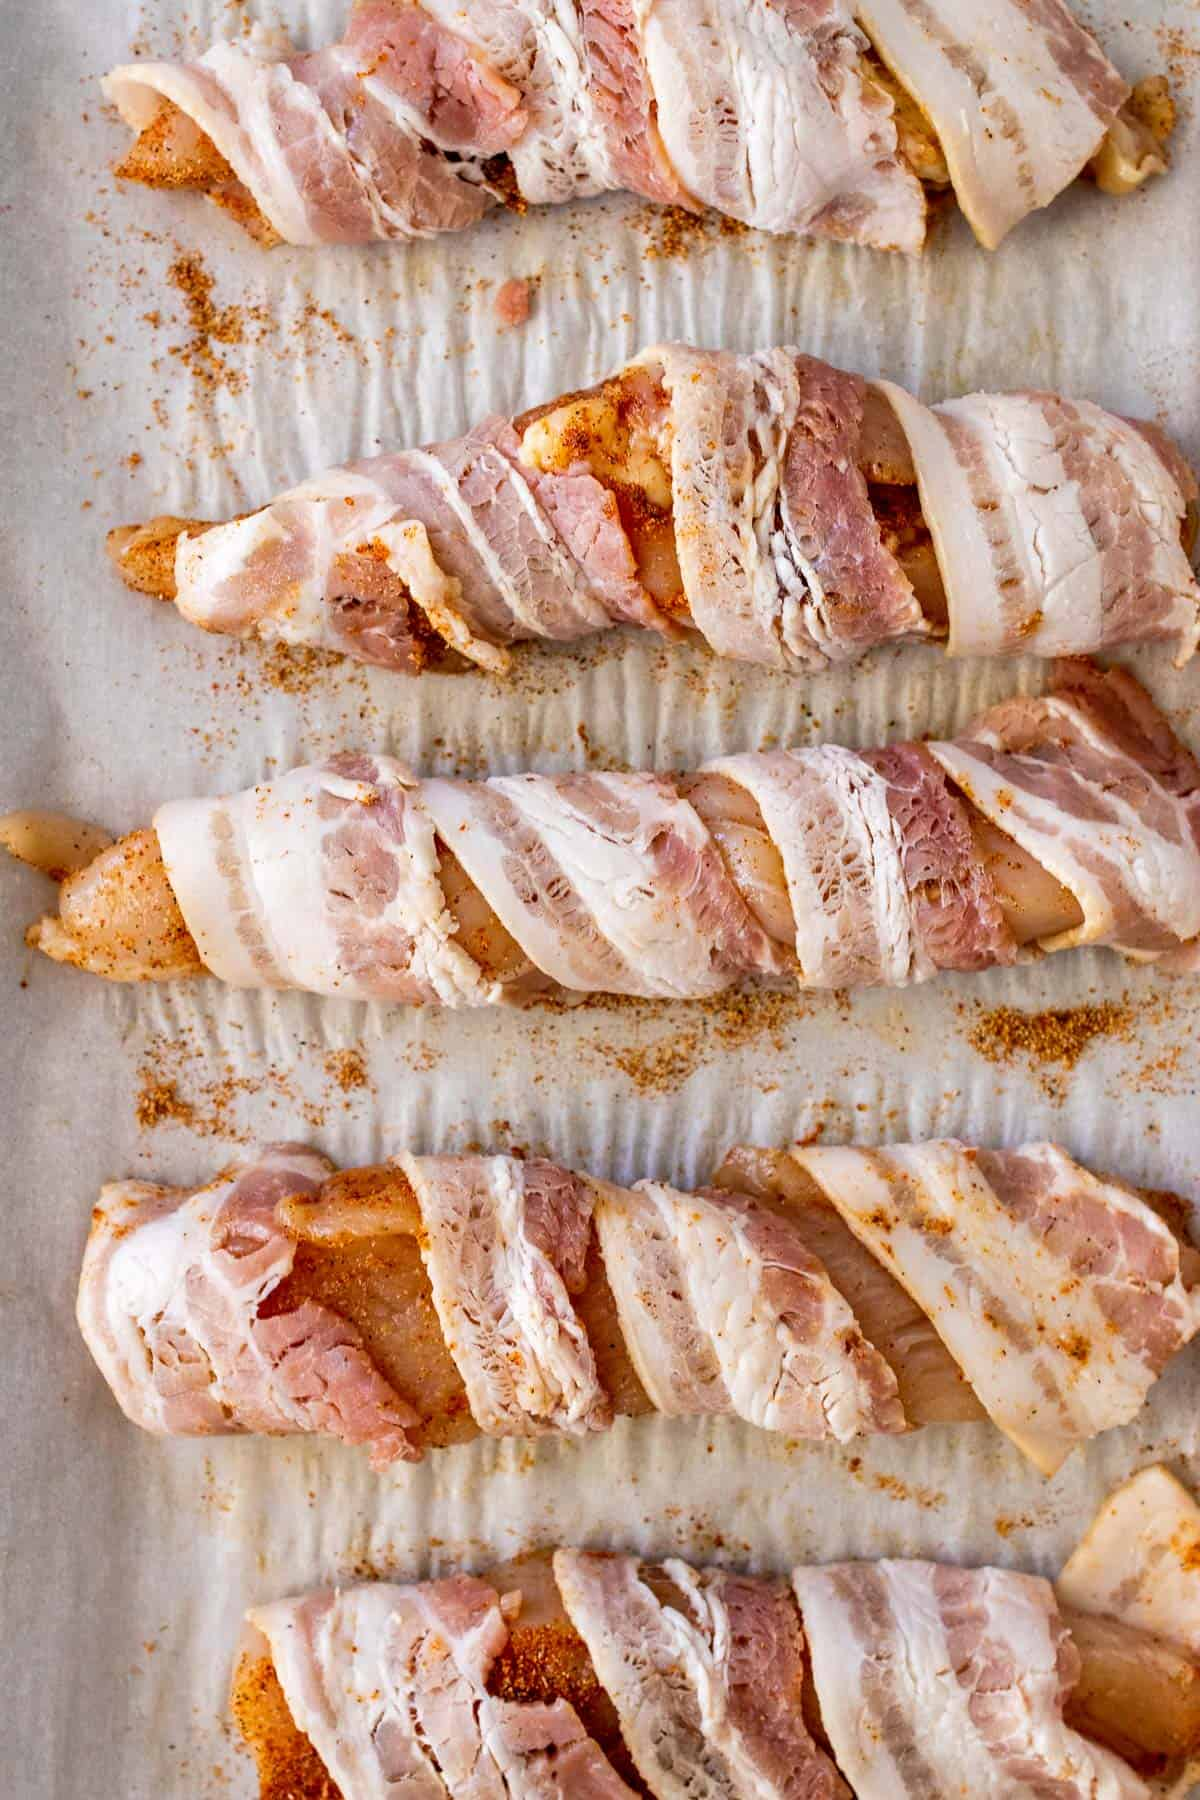 Seasoned chicken breast strips wrapped in bacon on a baking sheet, ready to go in the oven